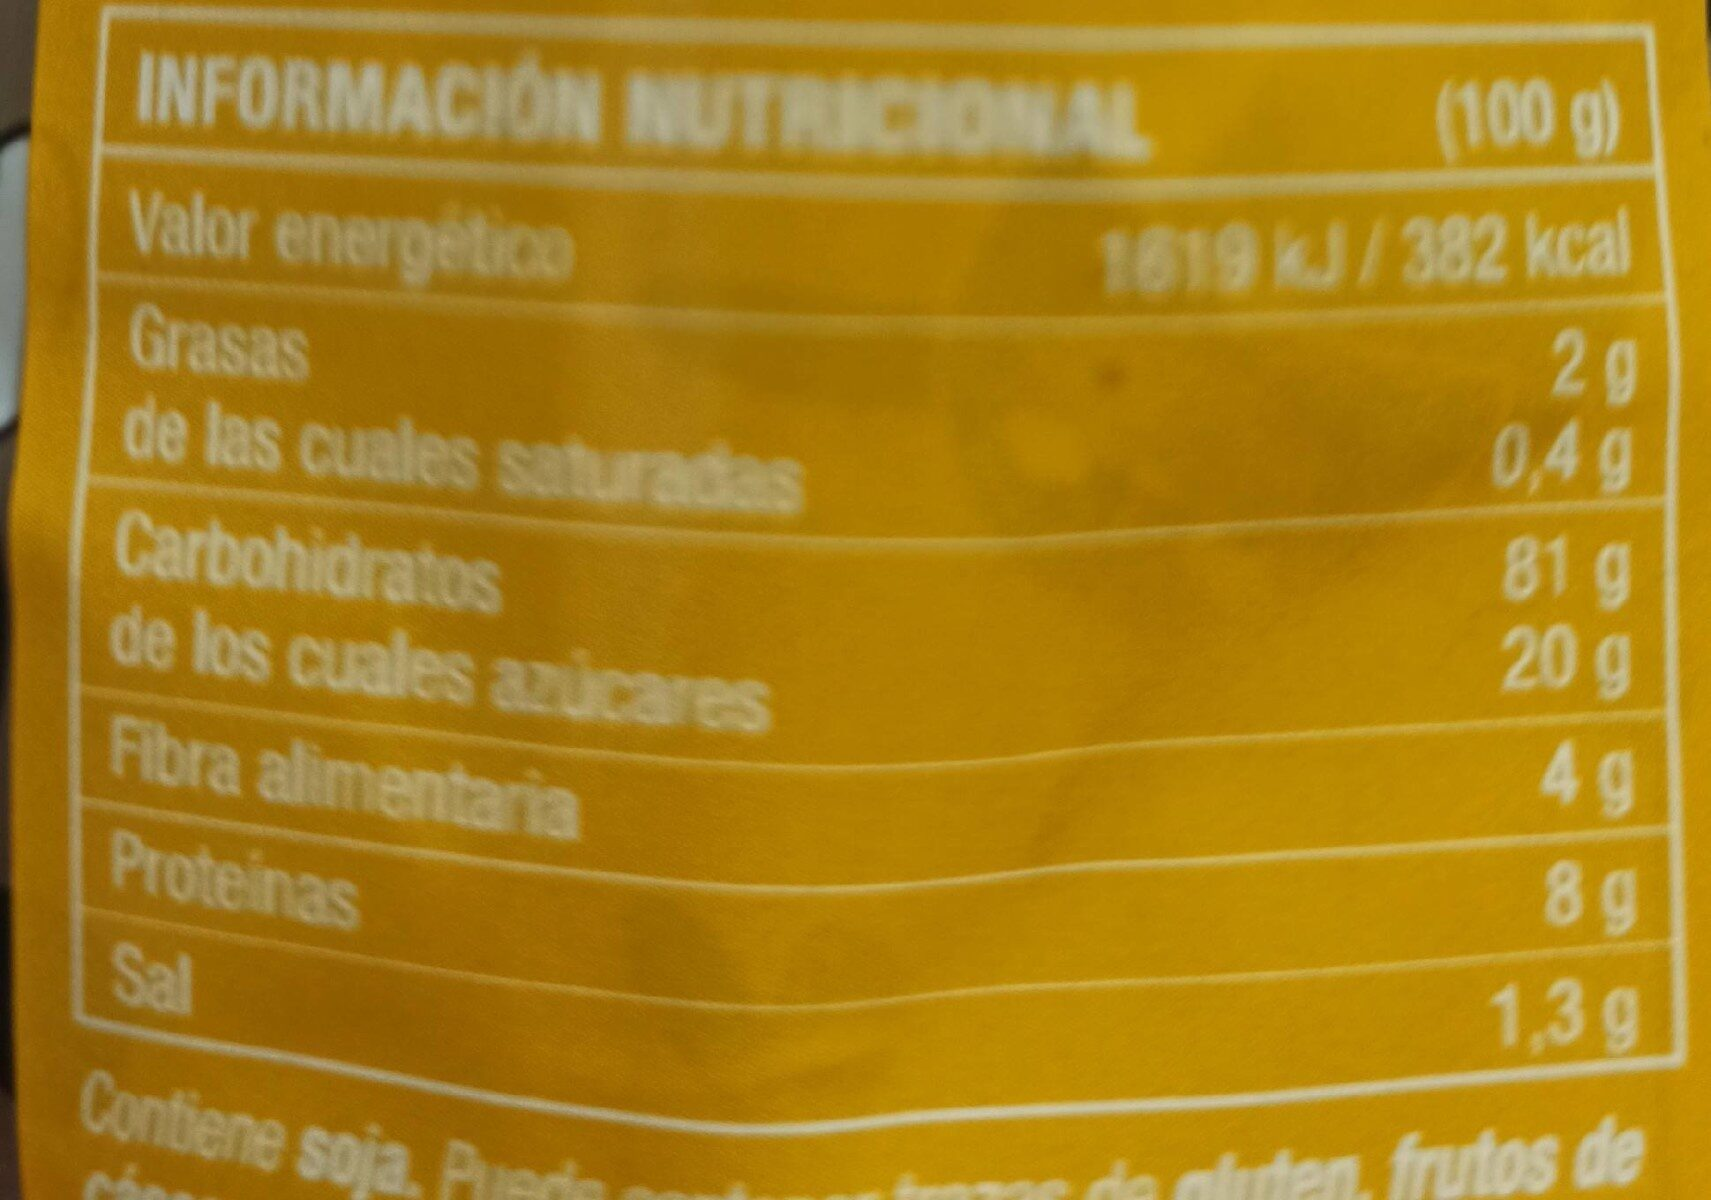 Xoko pops - Nutrition facts